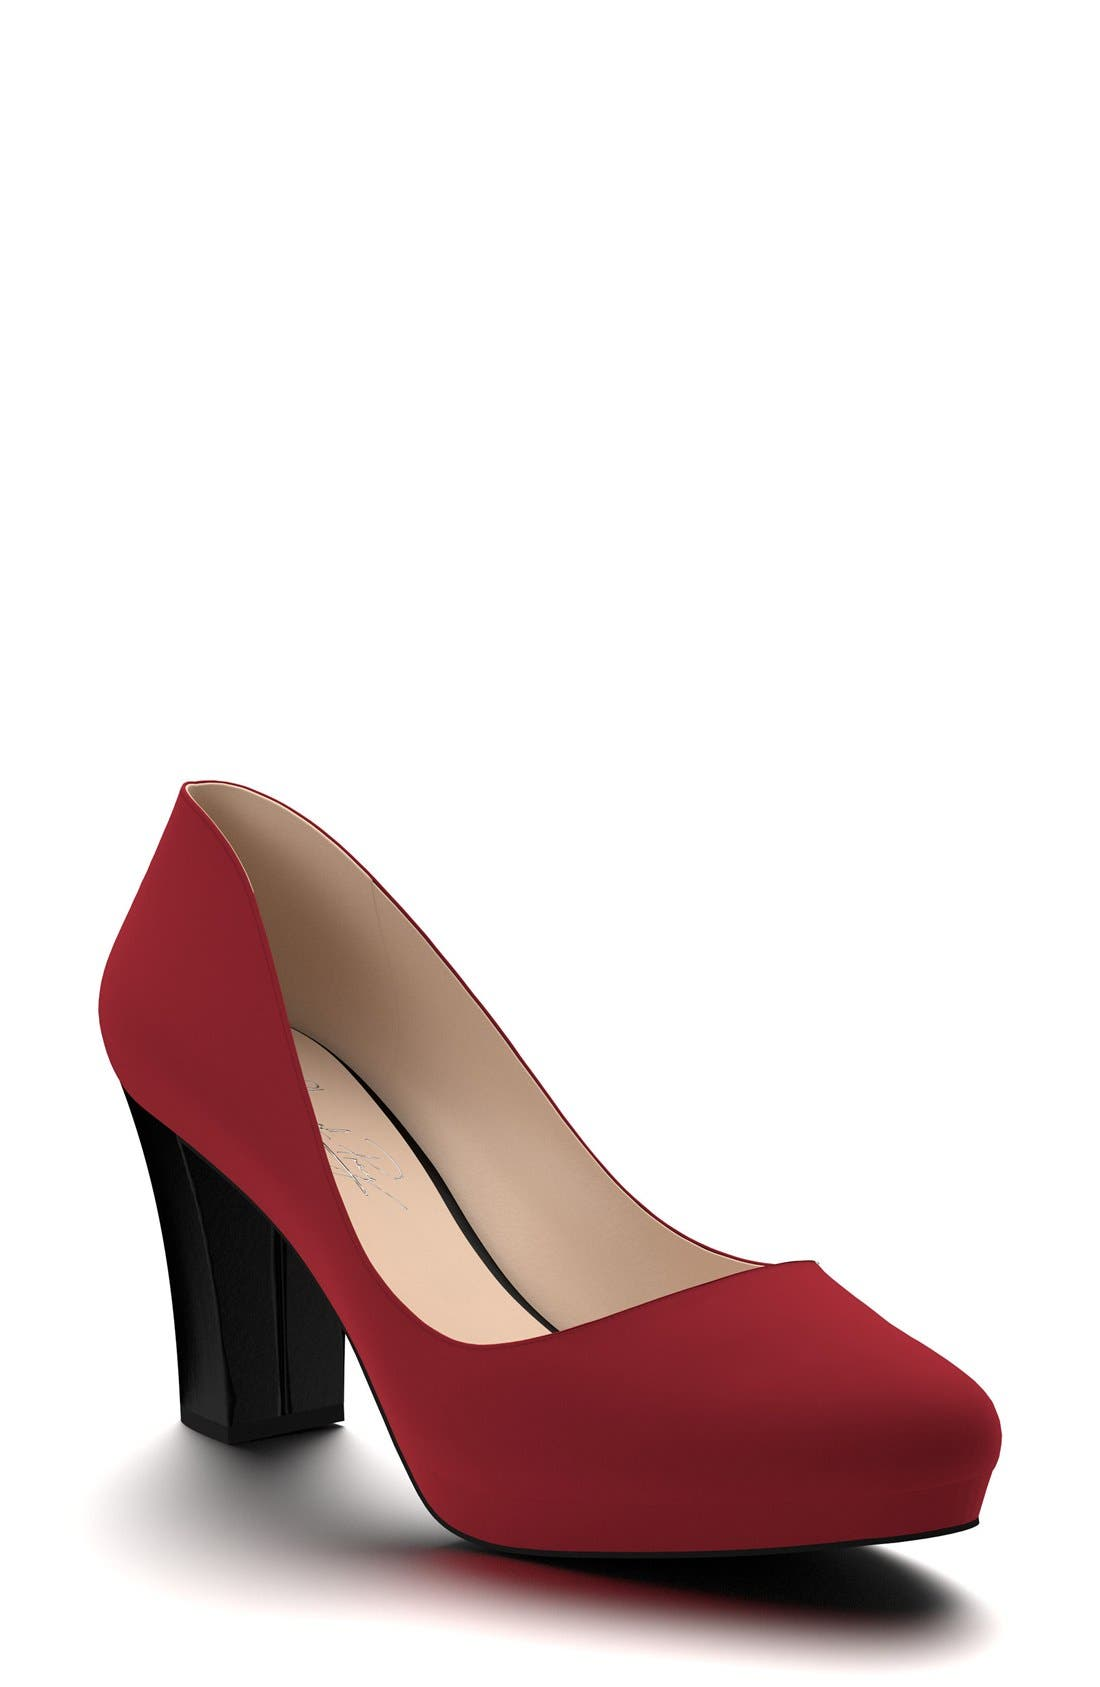 Main Image - Shoes of Prey Block Heel Platform Pump (Women)